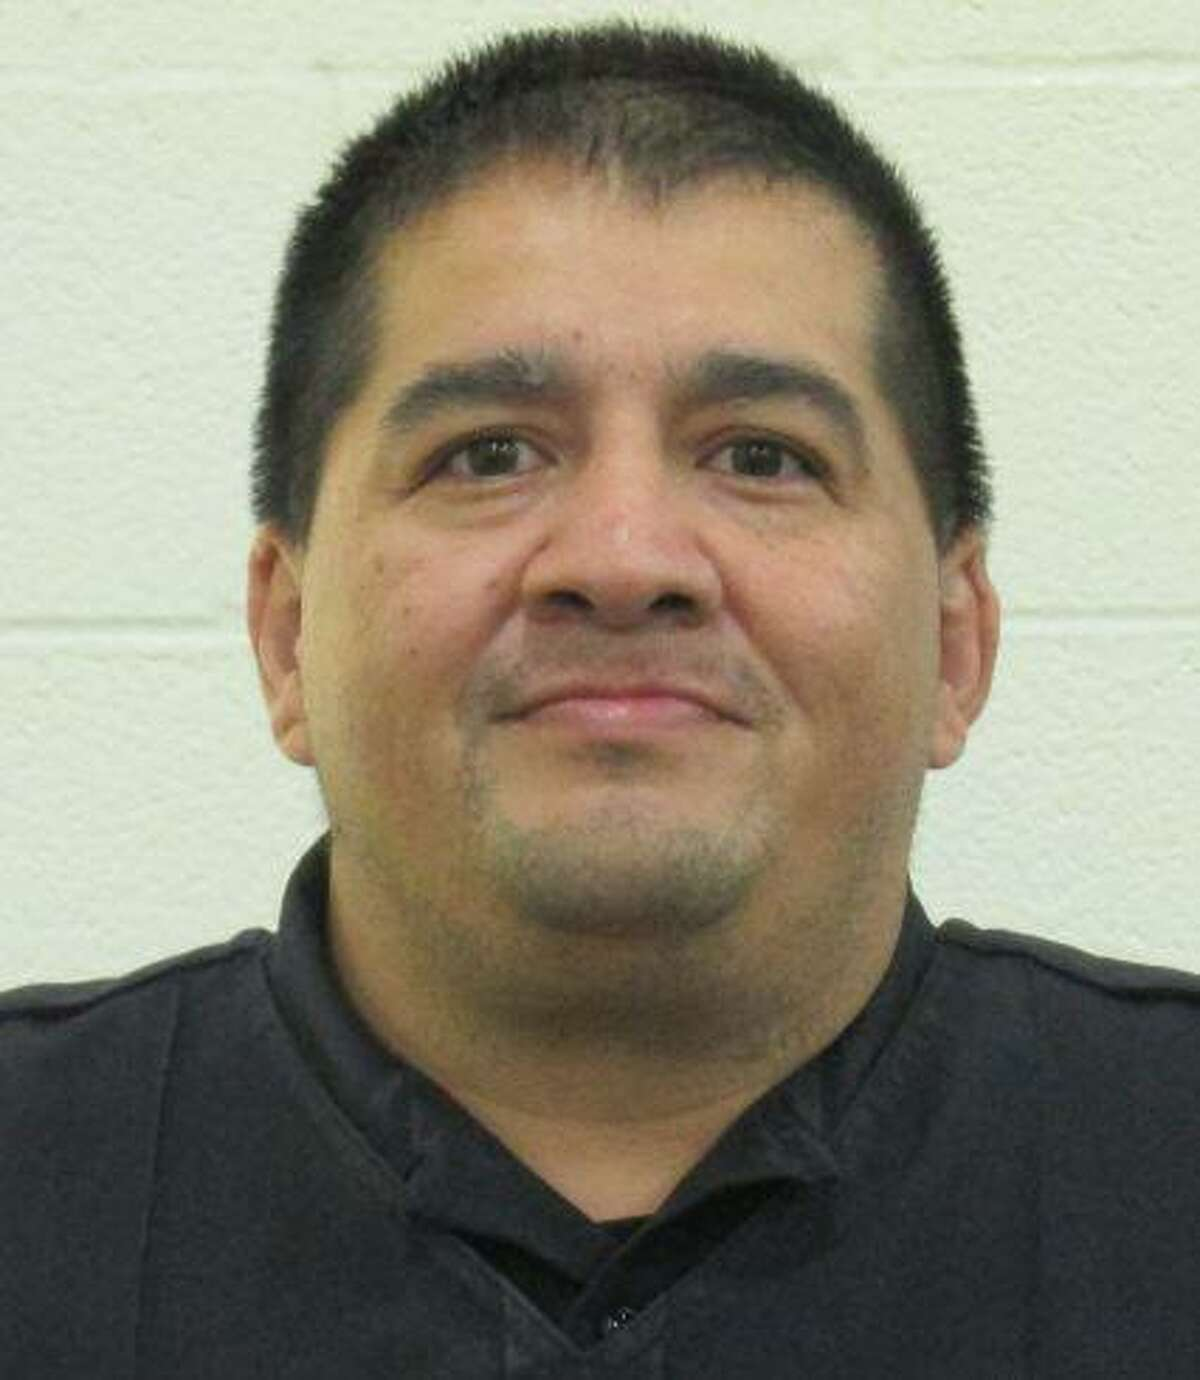 Jailer John Varela resigned from the Bexar County Sheriff's Office Tuesday amid an investigation into his alleged actions with inmates, officials said.